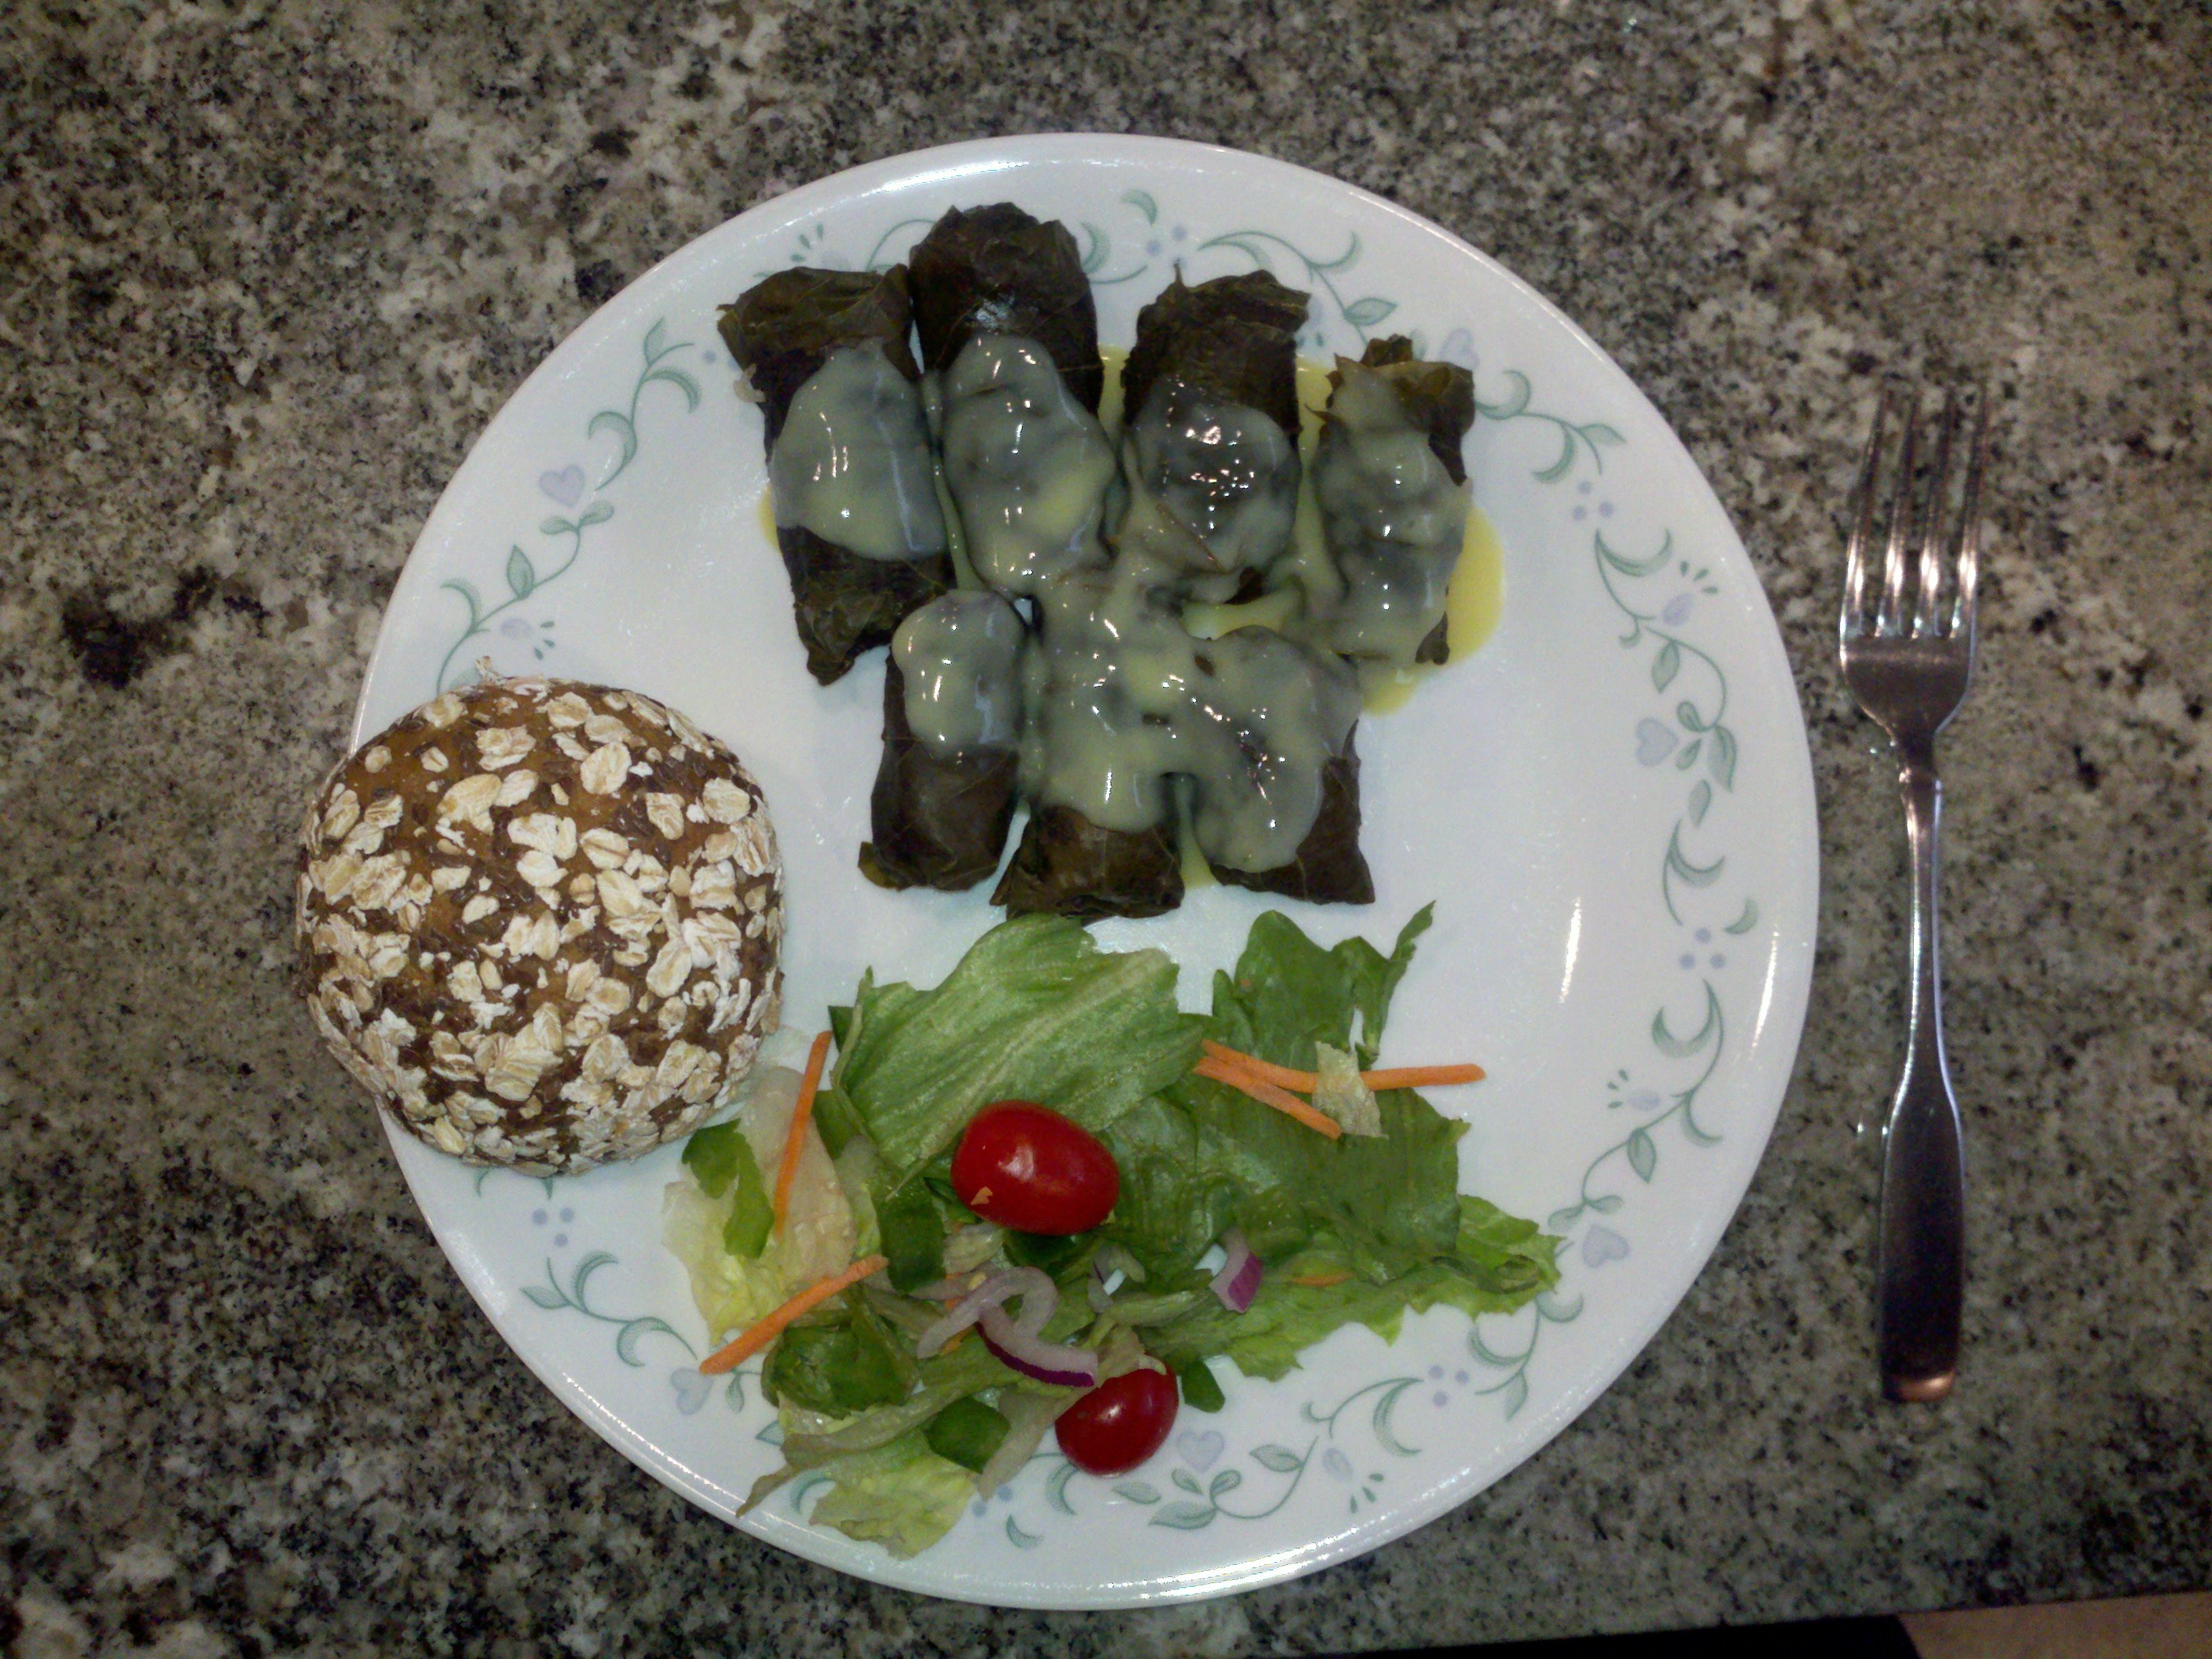 Milford, NH :: Meal of homemade Greek Dolmades (stuffed grape leaves) with Avgolemono Sauce (egg lemon sauce), Bread, and Salad, this is a meal to share !